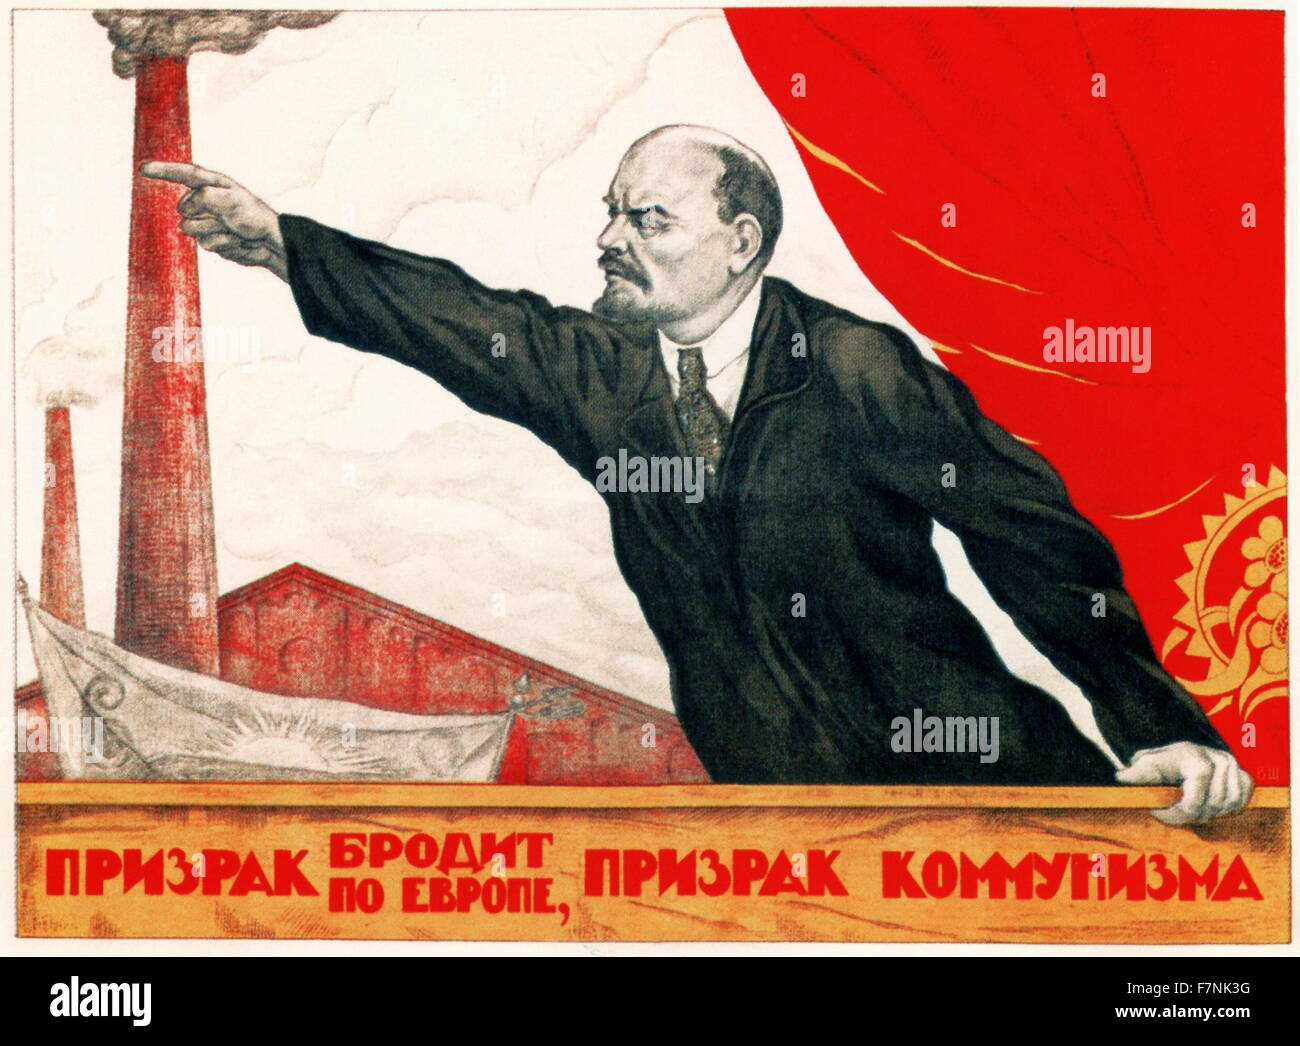 a biography of vladimir lenin a russian communist revolutionary The death of lenin: on 21 january 1924, vladimir lenin, the leader of  vladimir  lenin, the leader of the russian bolshevik revolution, died  years became the ' mecca' of communism and where it still remains to this day.